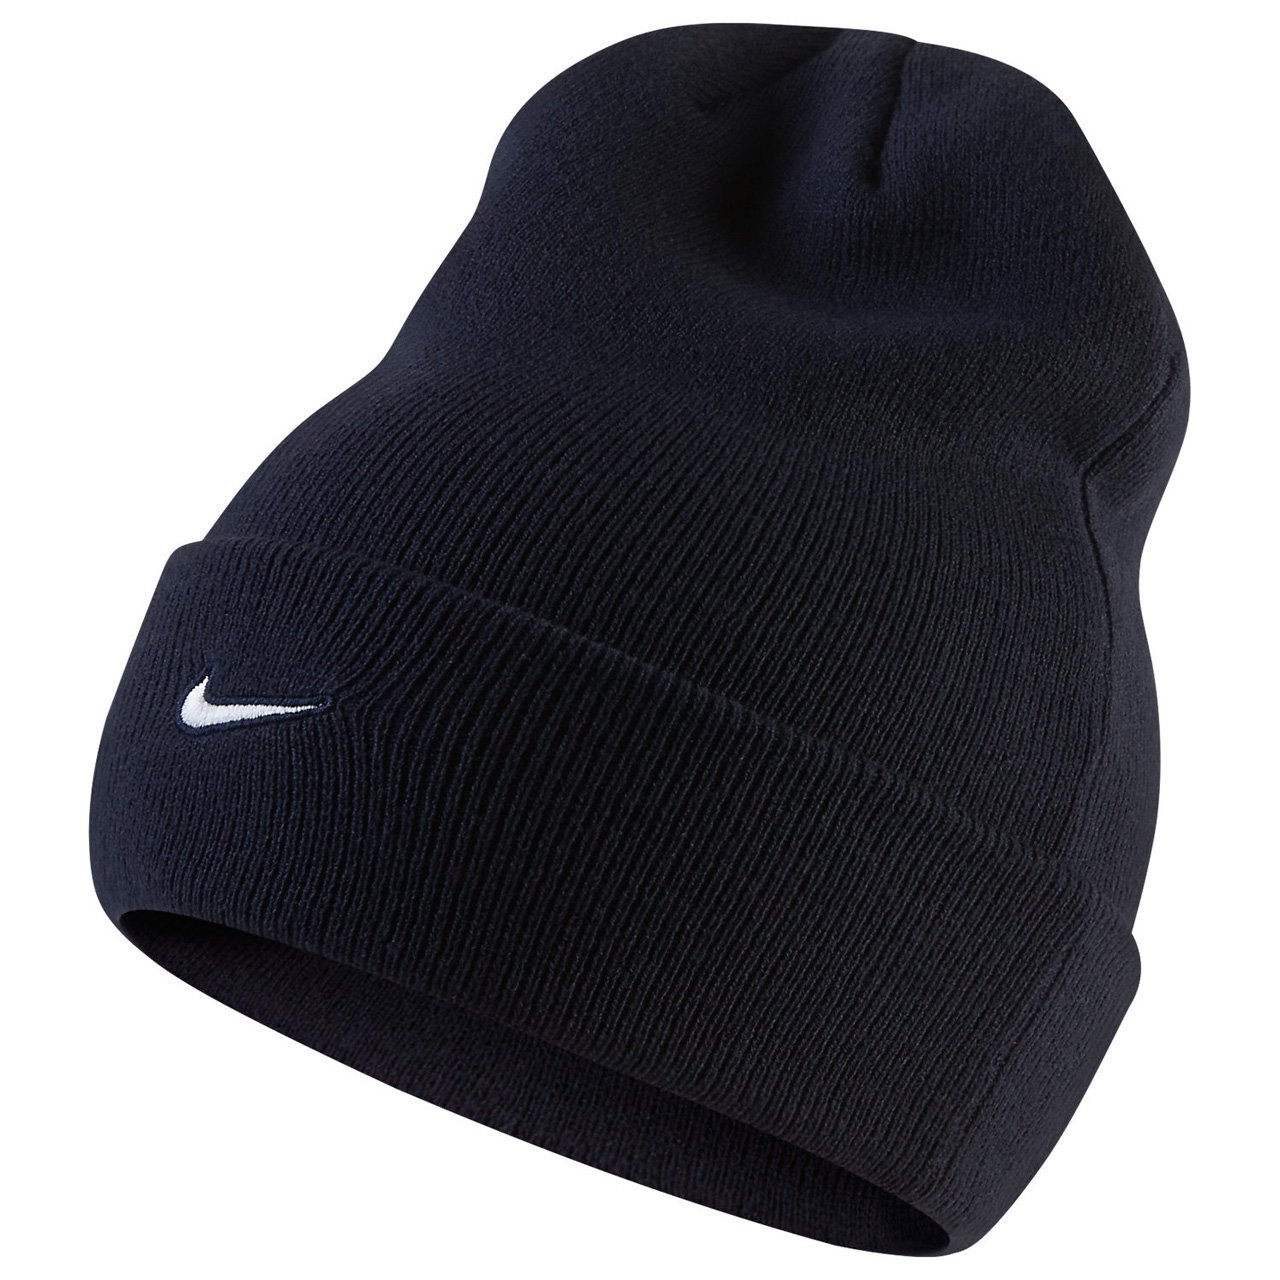 b3f1ce01d2a Nike Mens Stock Cuffed Knit Golf Beanie Hats